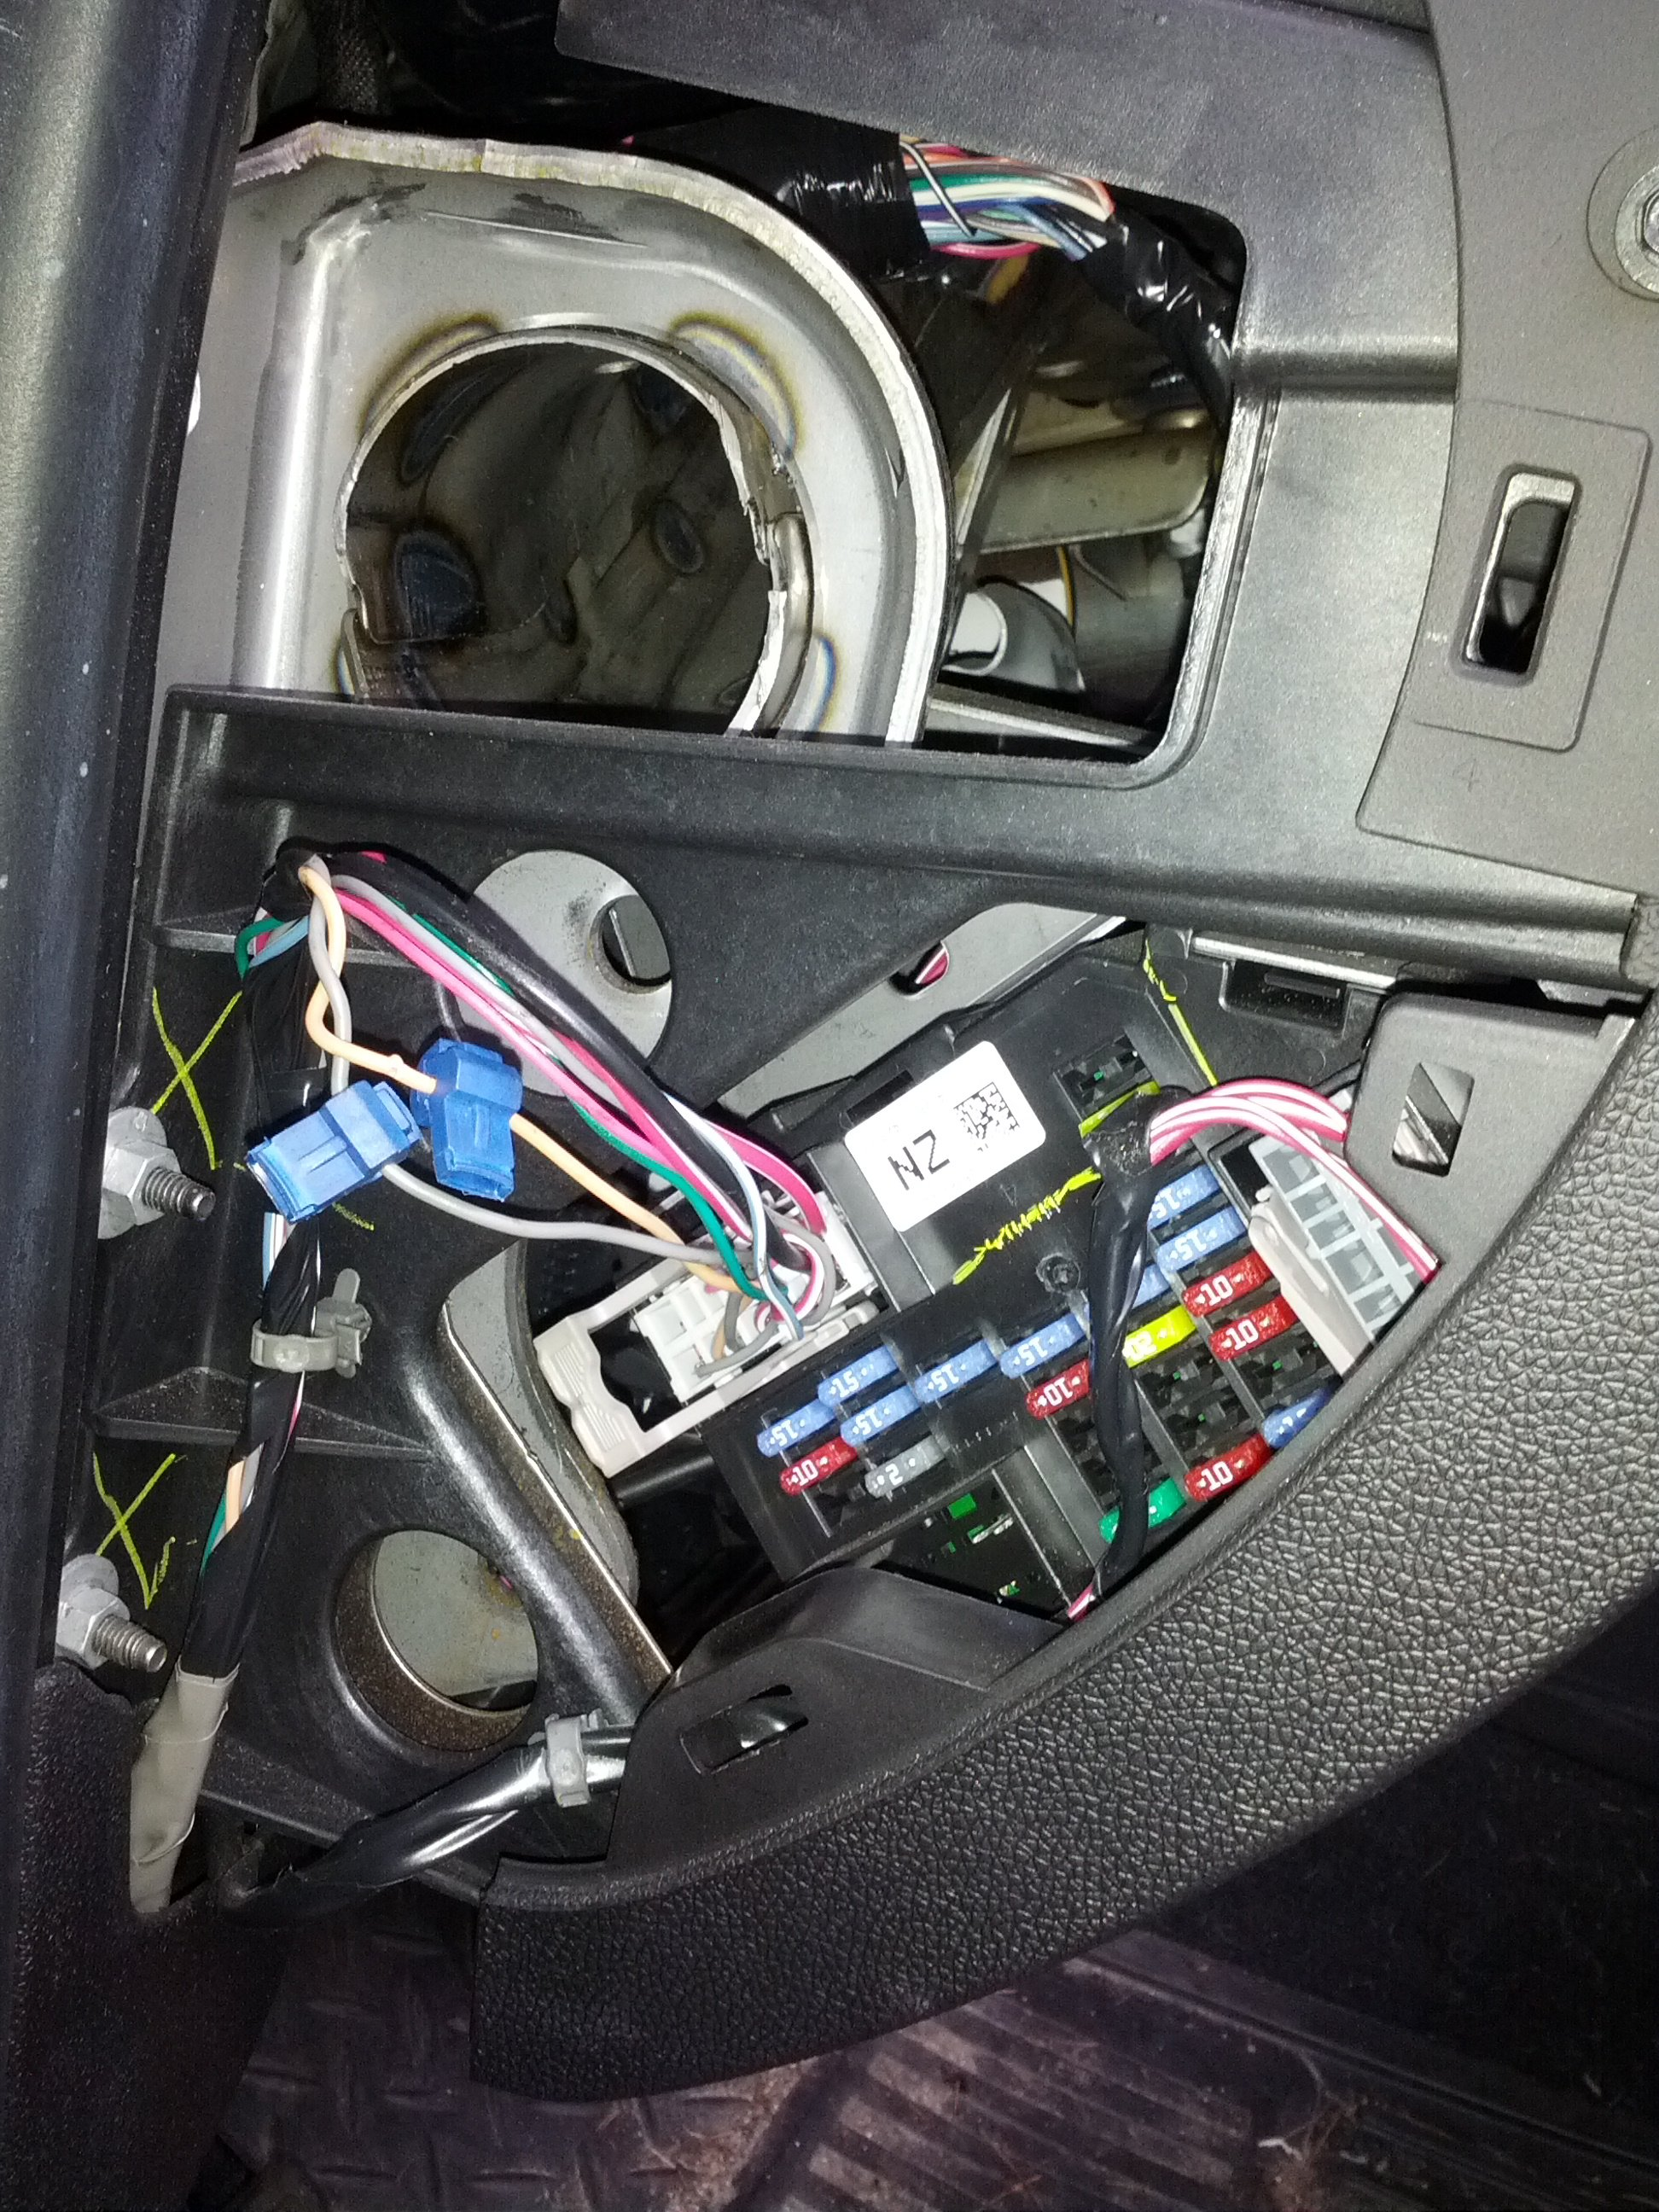 I U0026 39 M Looking For A Wiring Diagram For The Fuse Box On The